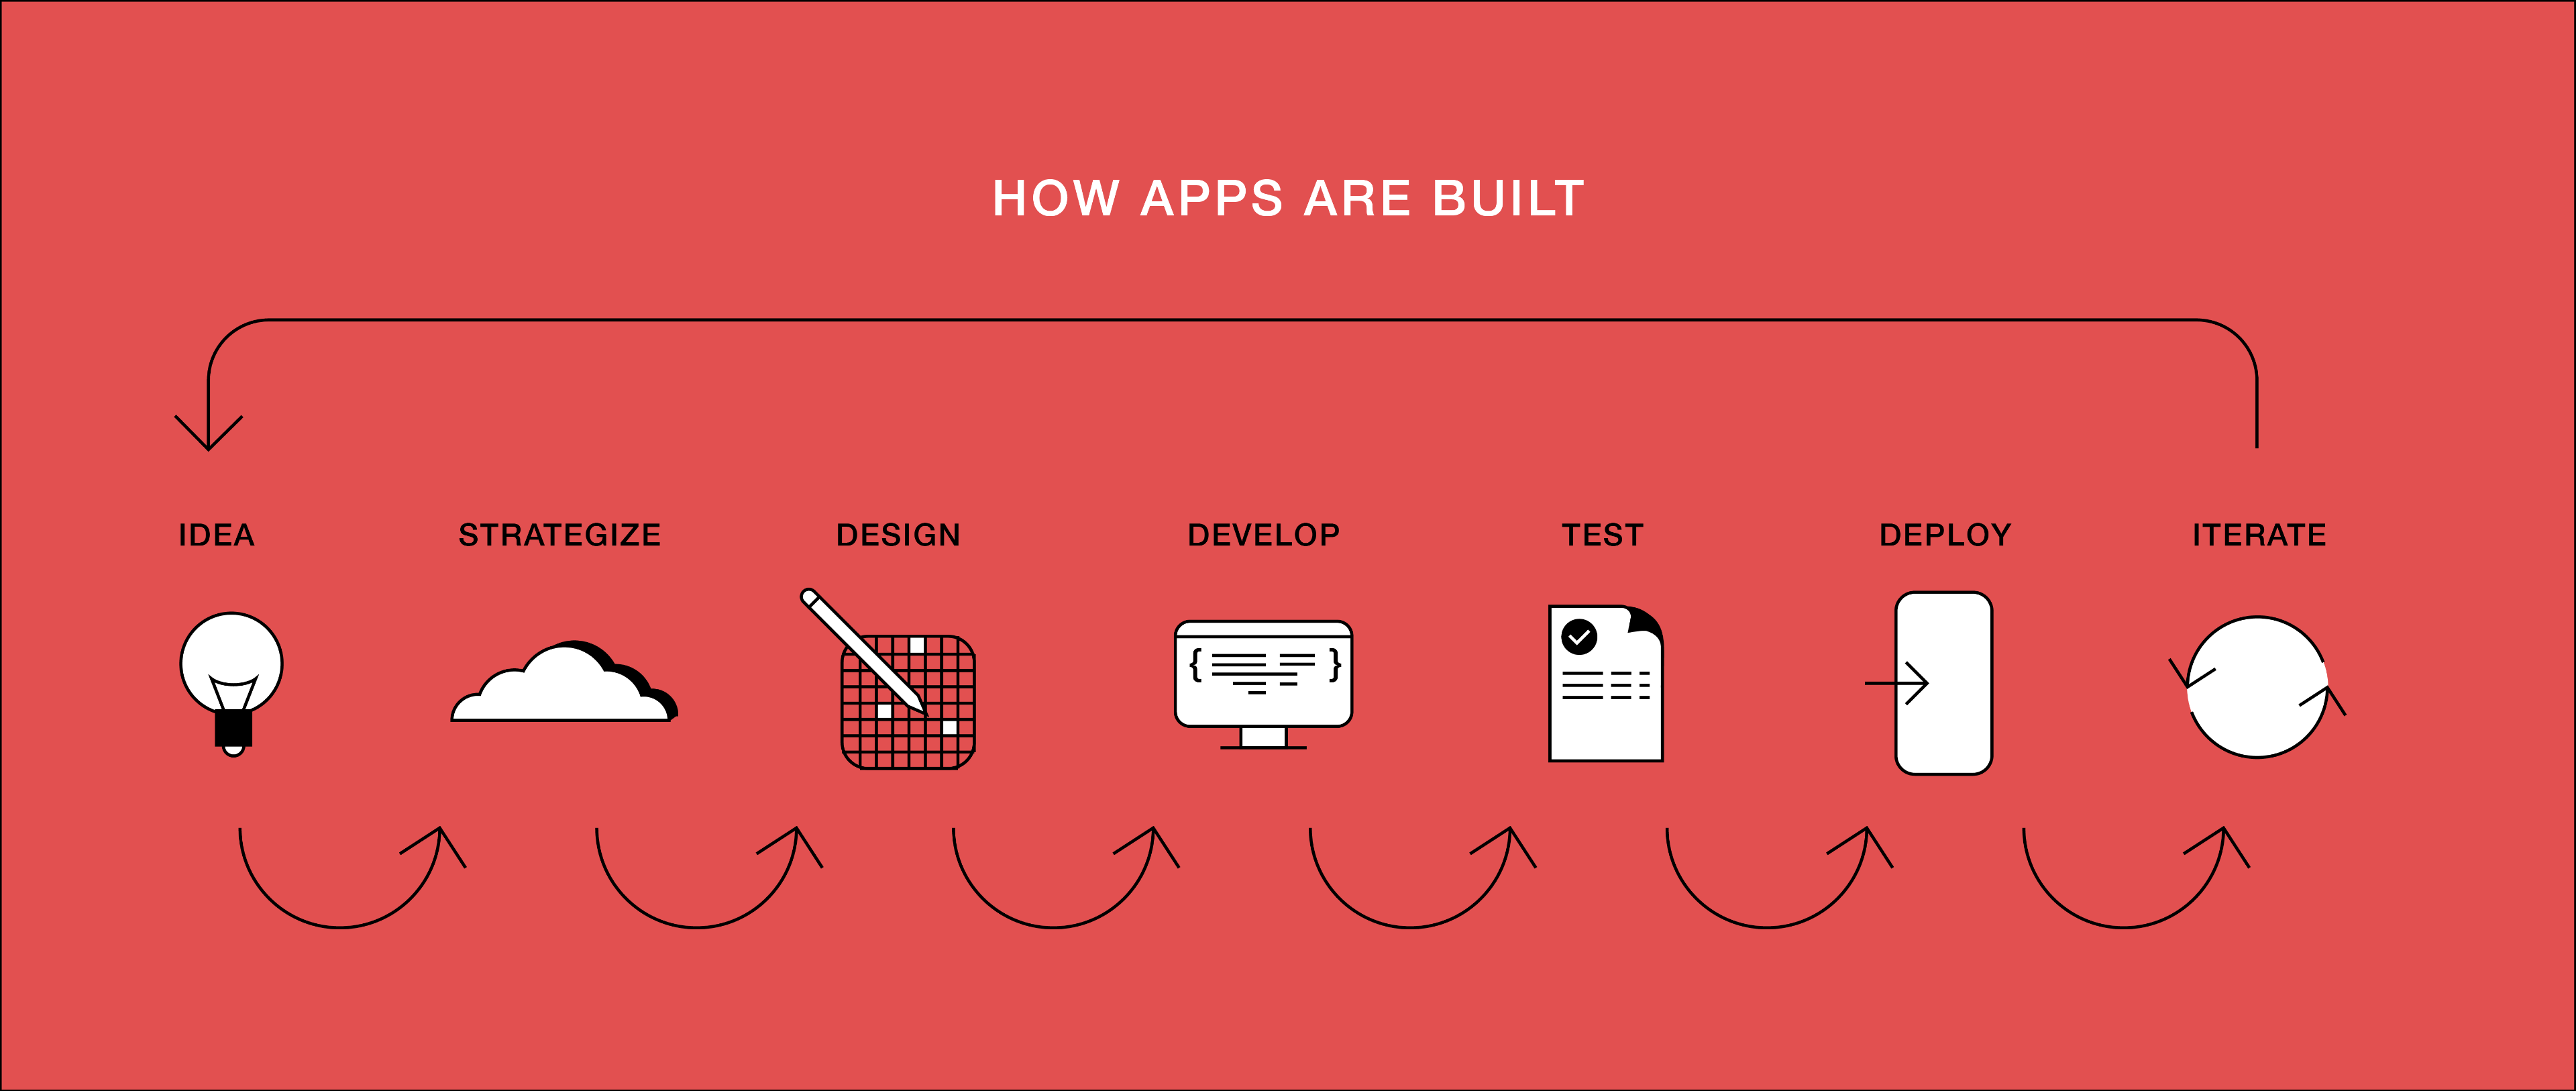 how apps are built through ideation, strategy, design, development, and test enginering